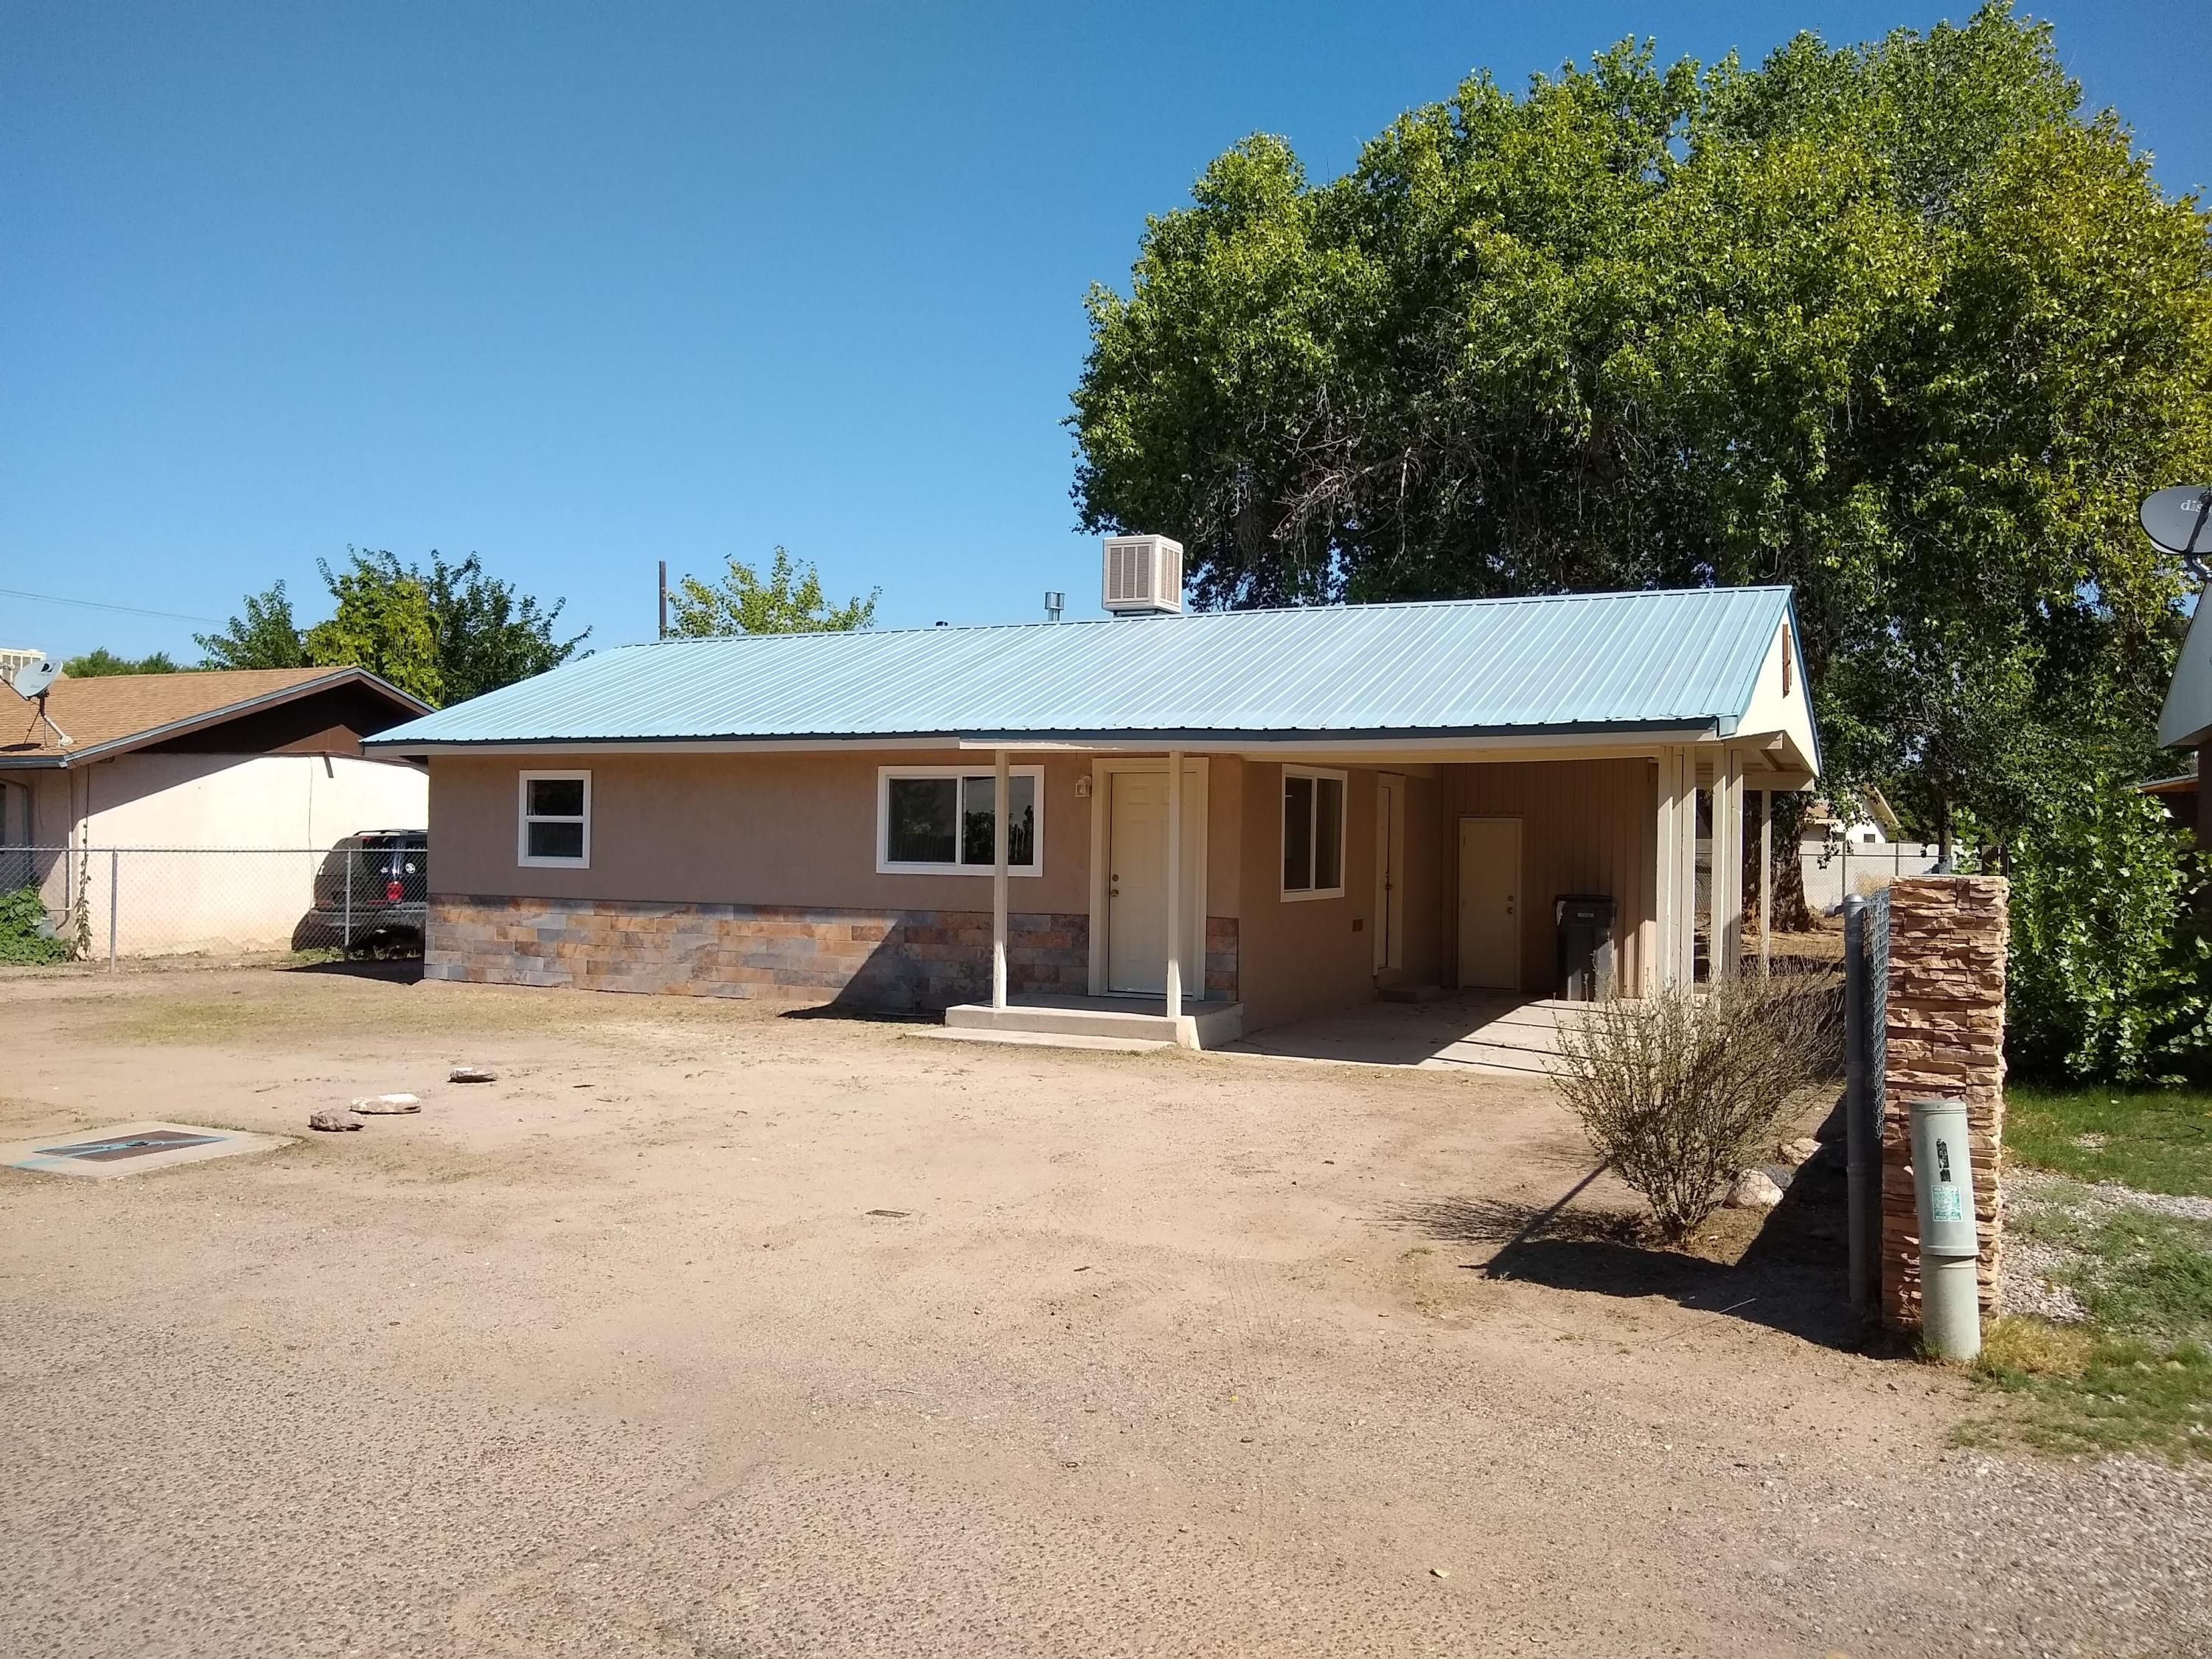 Beautiful 2 Bedroom - 1 bath. This home was totally remodeled in 2018. Great starter home. Large backyard with large shade tree.Work shed.  Very quiet street. Shopping, restaurants and churches nearby.